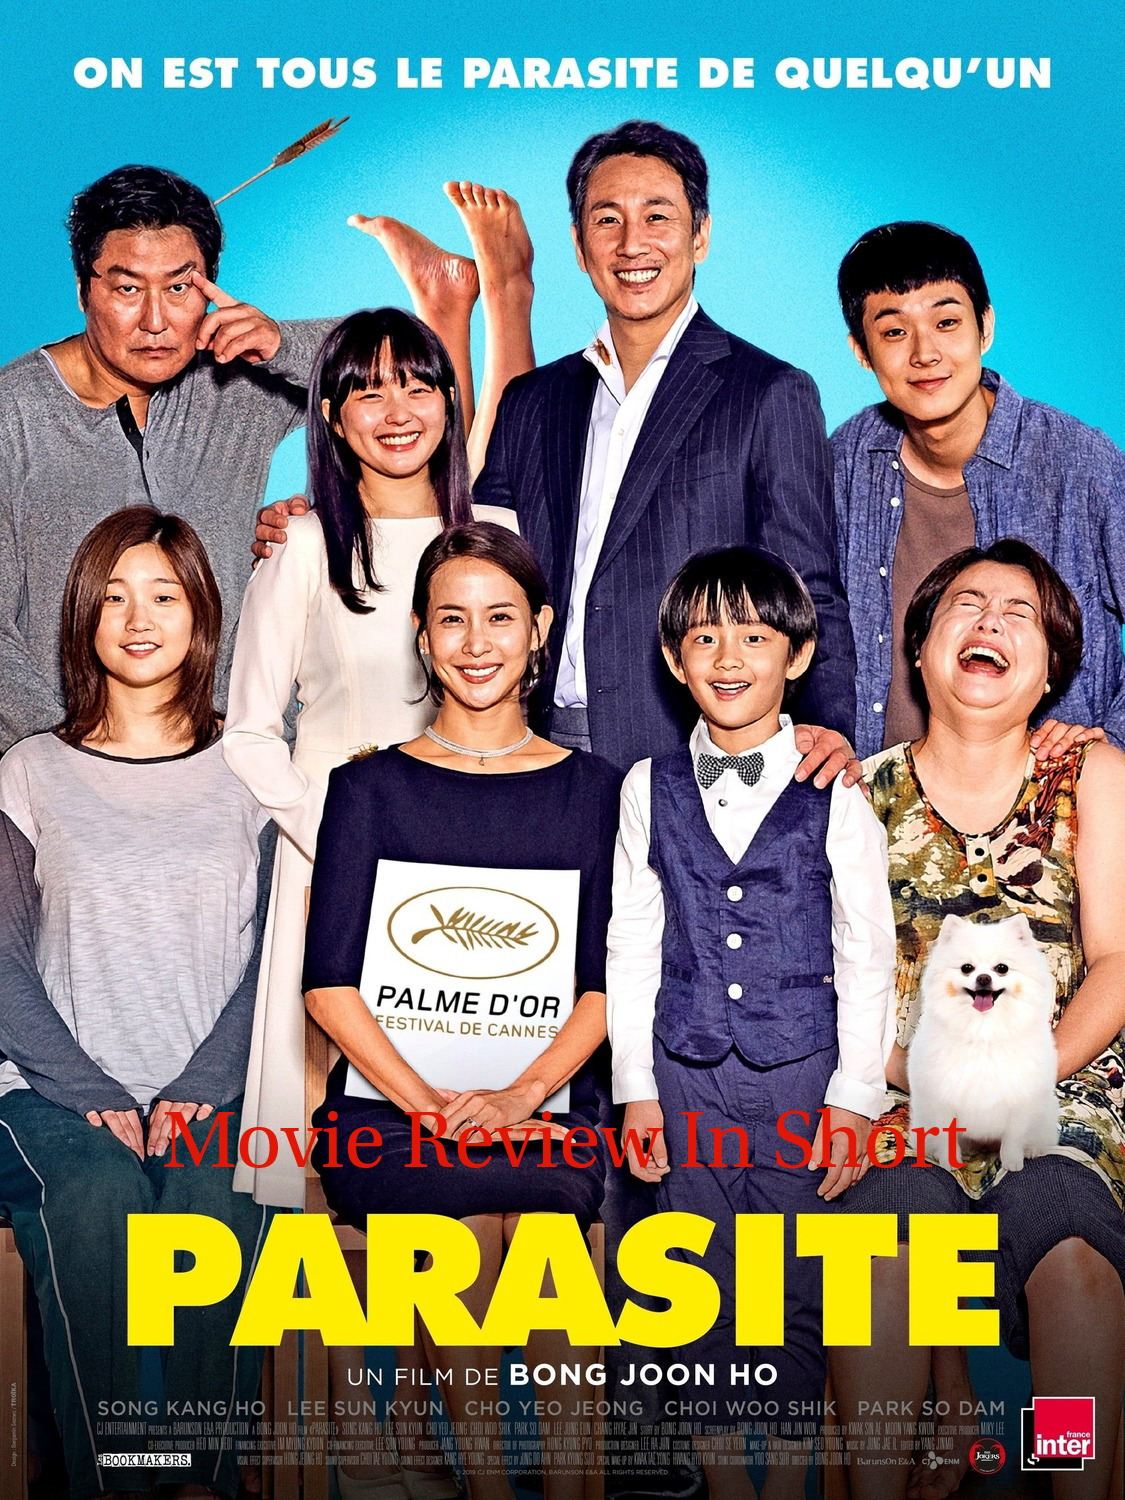 Parasite 2019 Movie Review Its Not A Masterpiece But Not Less Than It Movie Review In Short